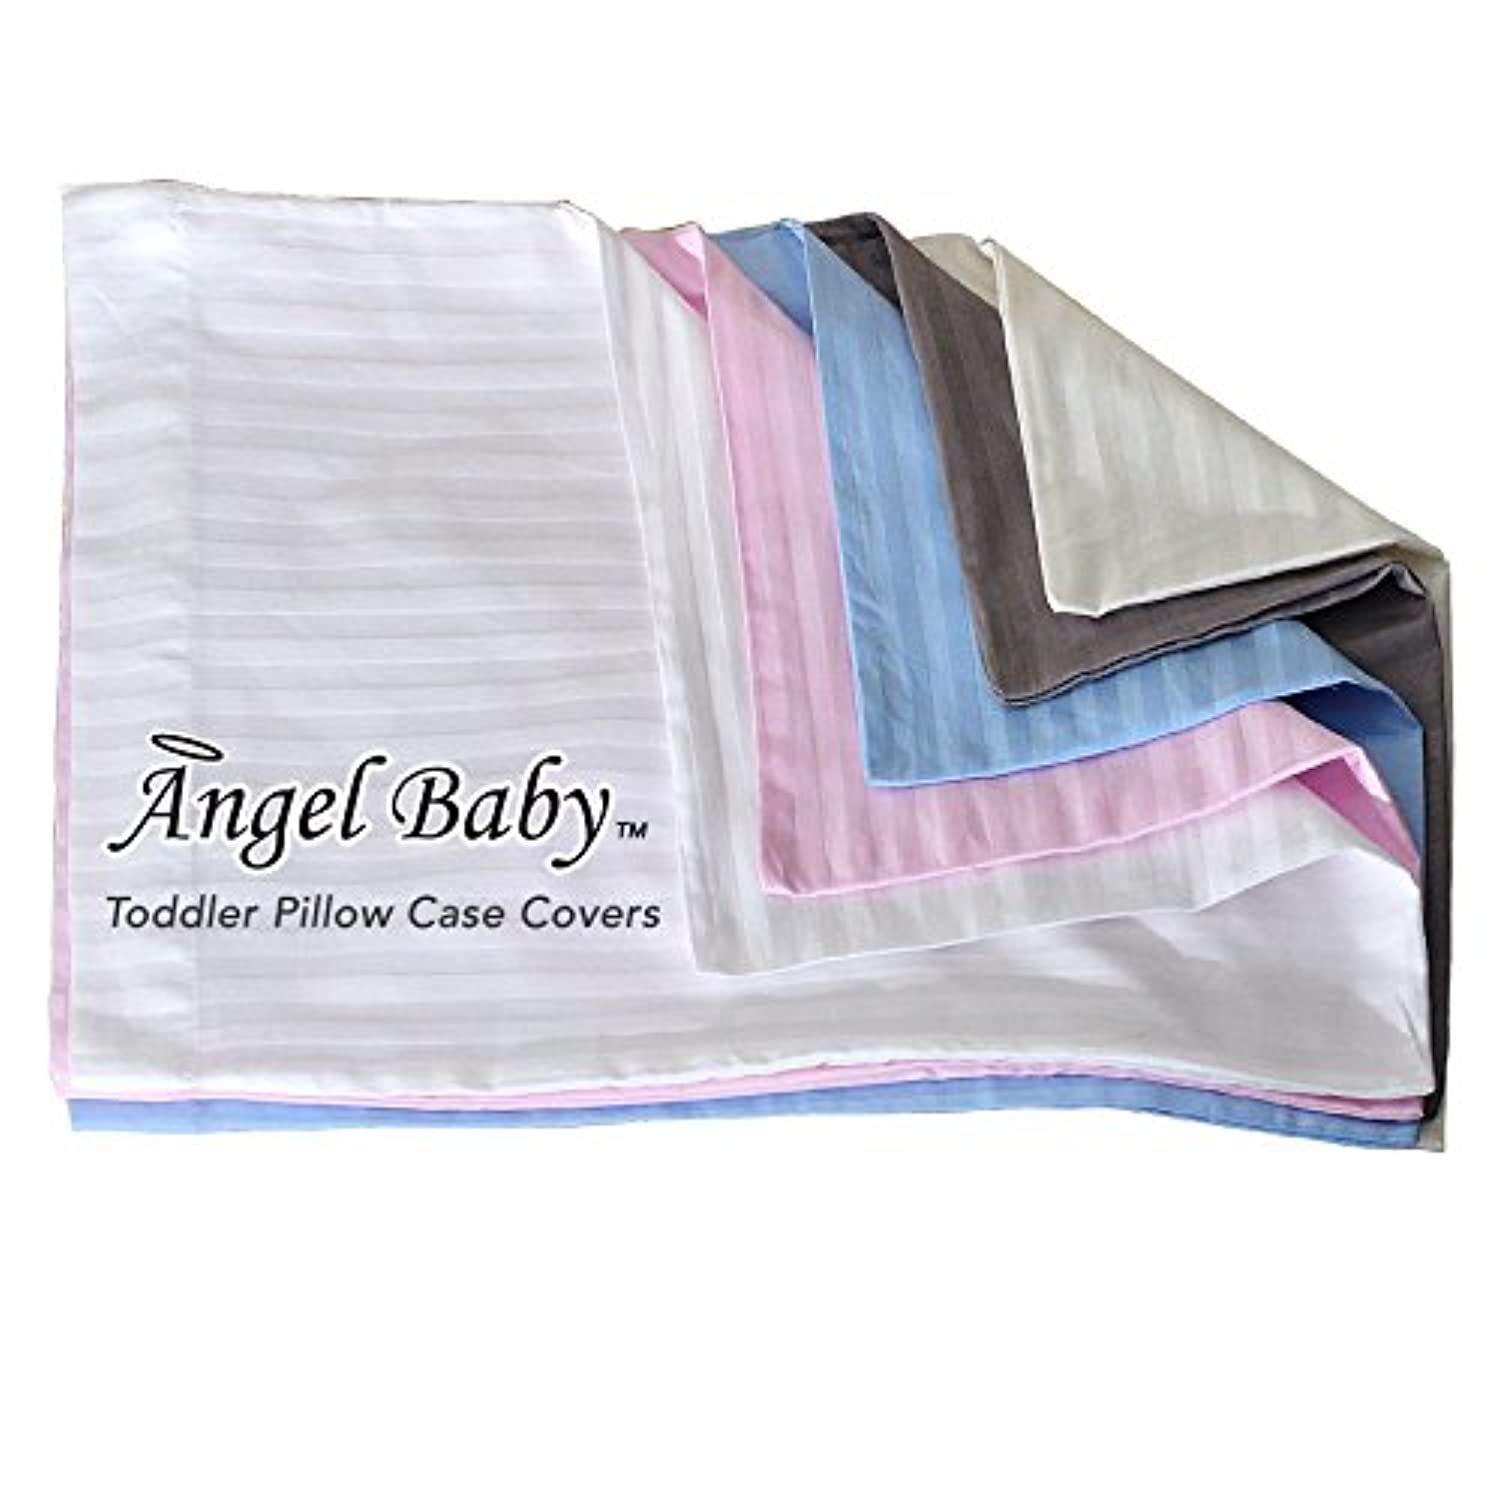 Angel Baby Toddler Pillow Case Cover - BLUE, 100% NATURAL Cotton Percale, 400 Thread Count Sateen Weave, Machine Washable, Tumble Dry - for Kids Bedding - (14 x 20.5) by Angel Baby